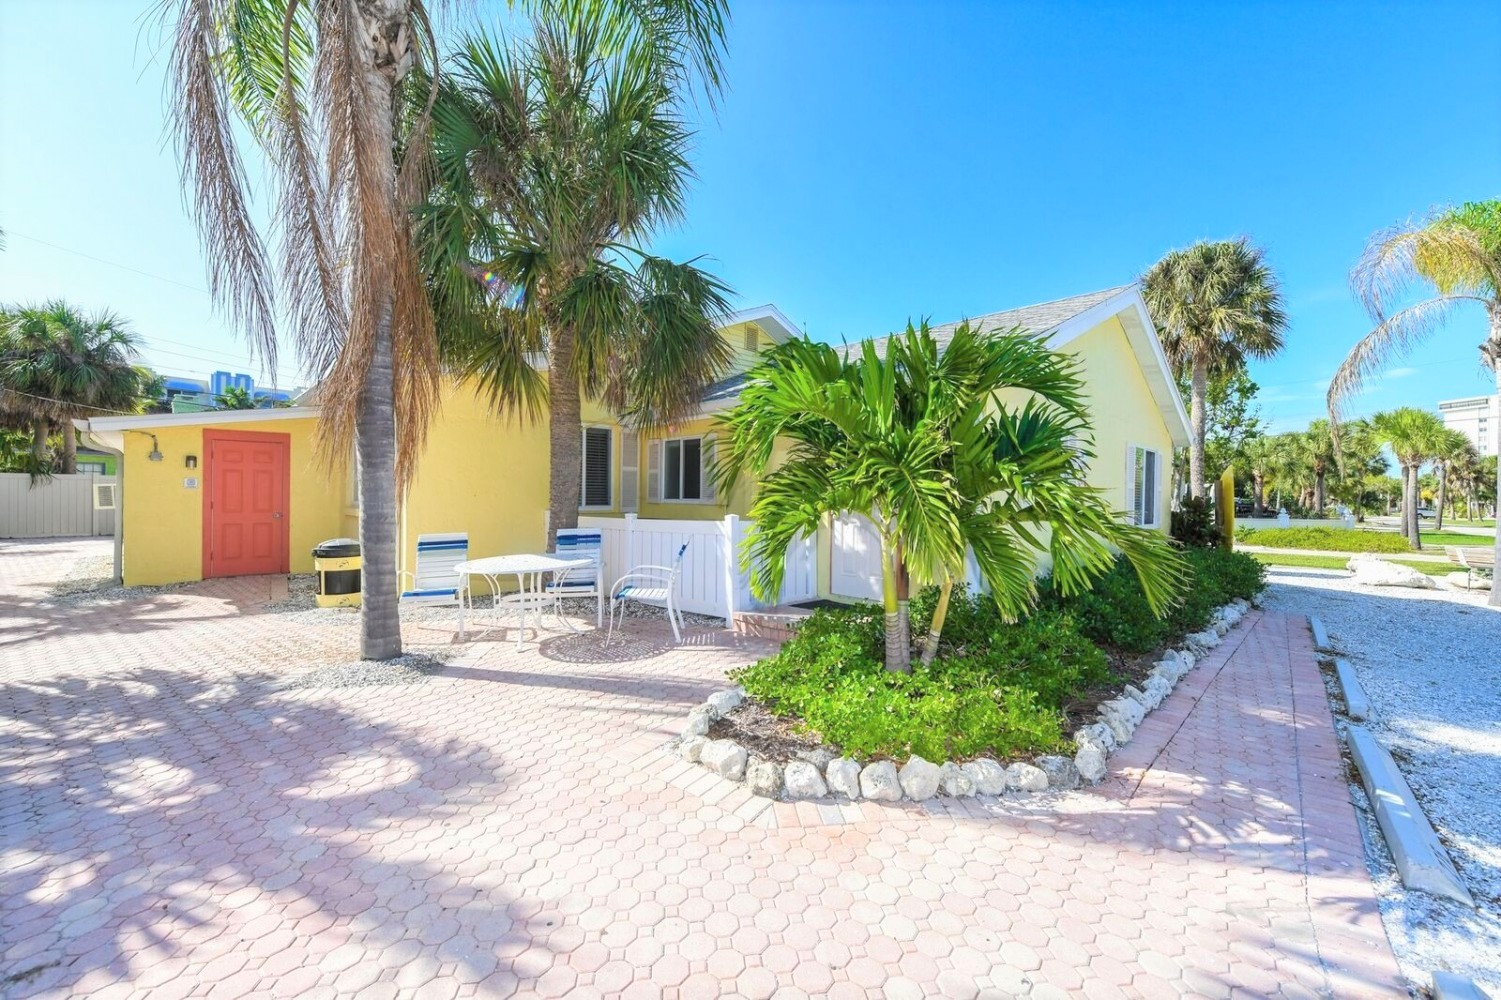 177 - Siesta Key Vacation Rentals